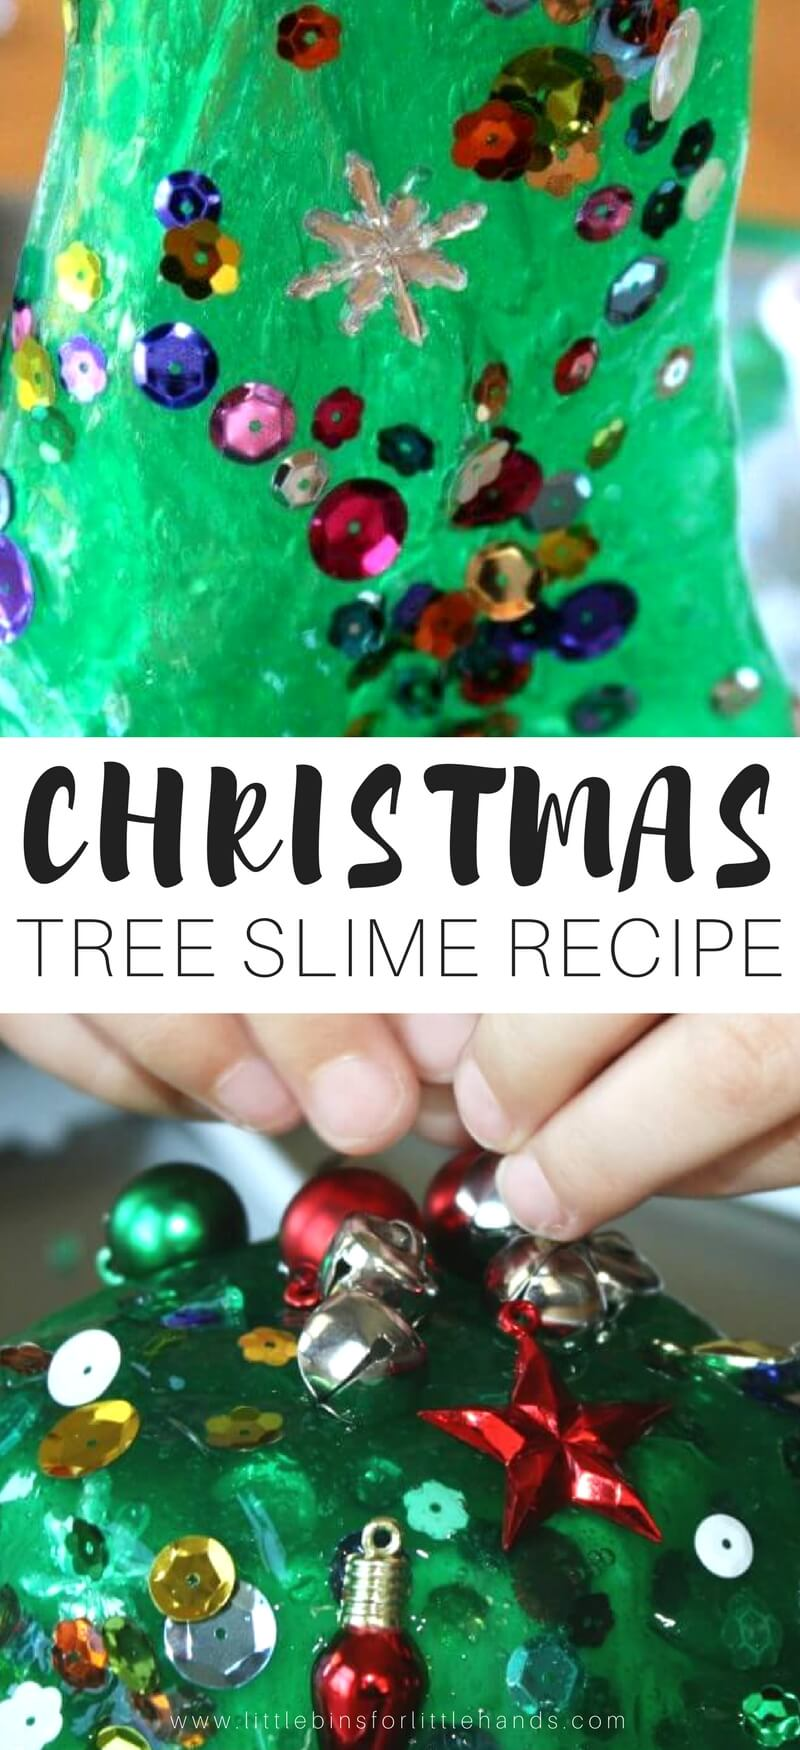 Our Christmas tree homemade slime recipe is a great kids science experiment! Homemade slime is super easy to make with kids and is a great STEM activity! #STEM #slime #science